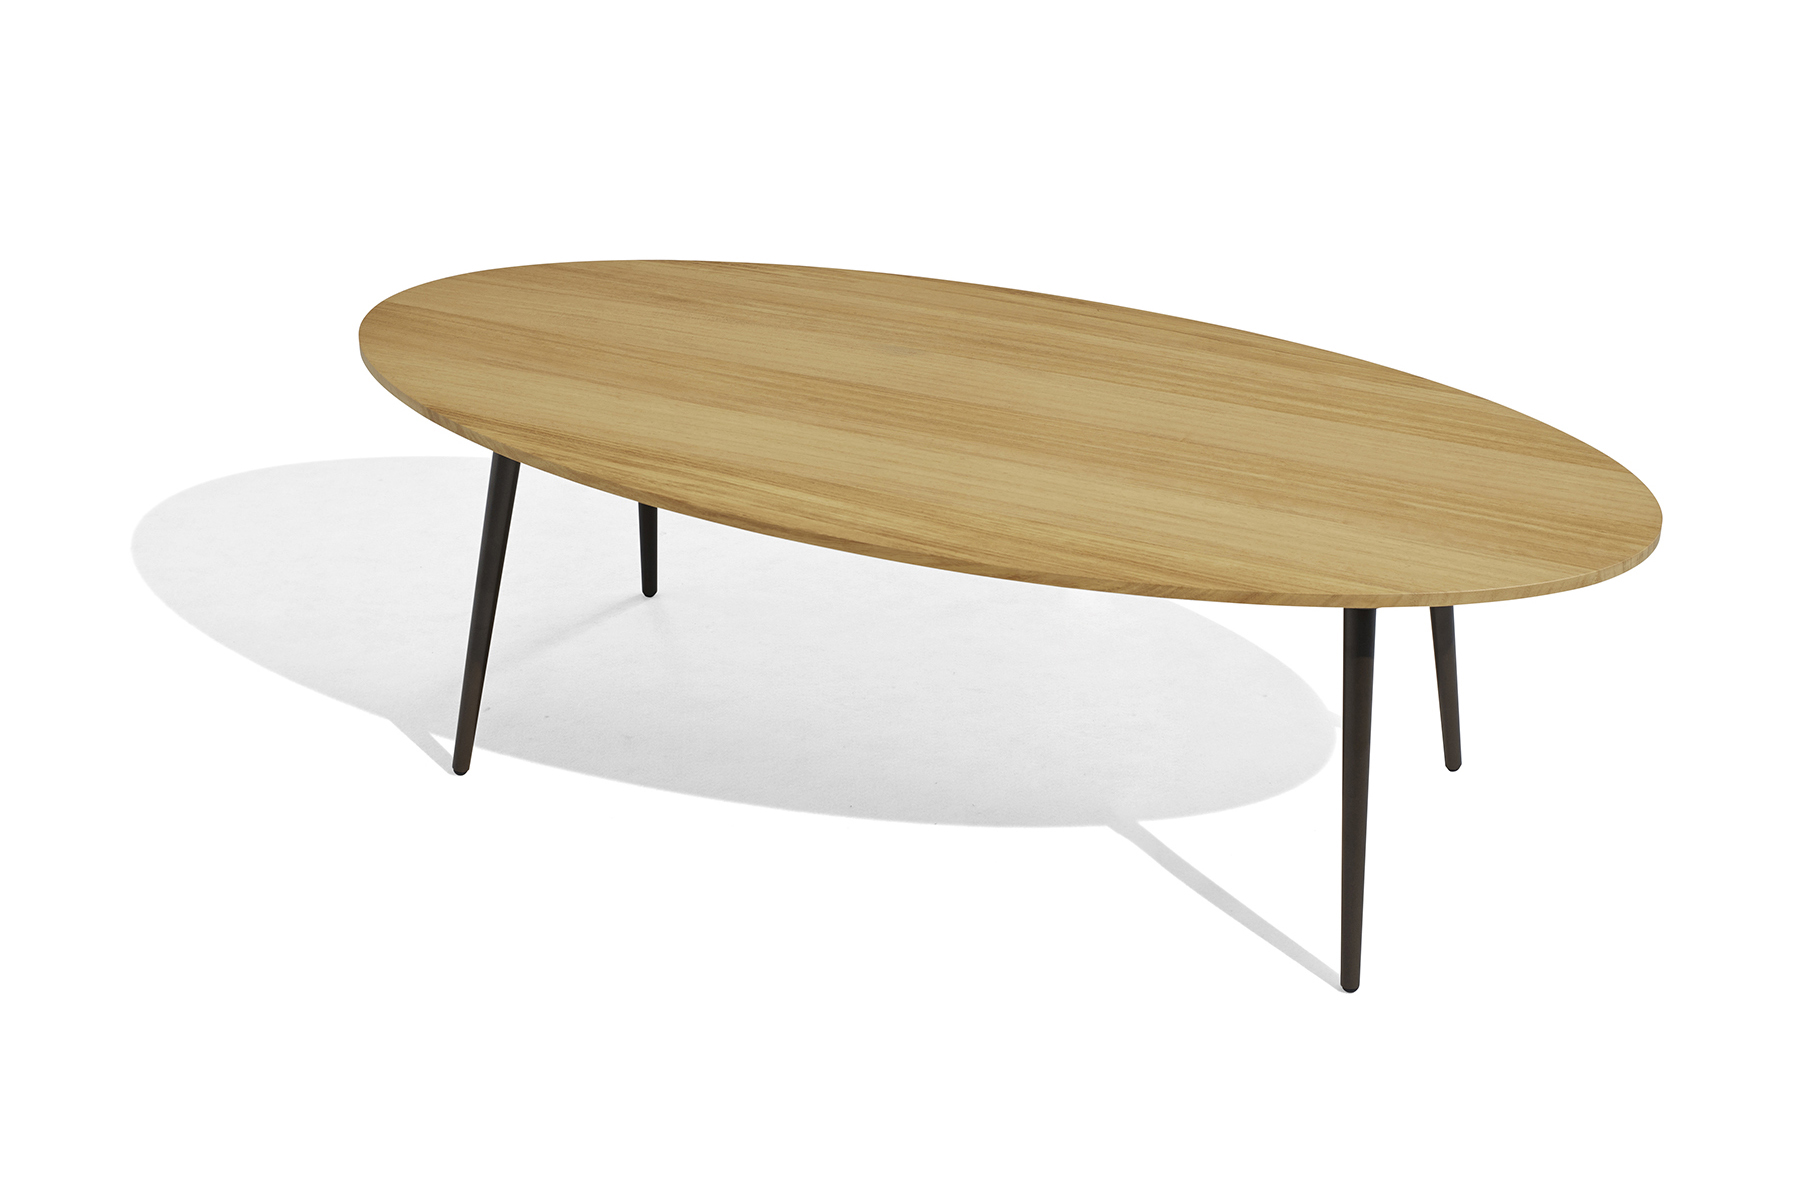 vint_lowoval130x60table